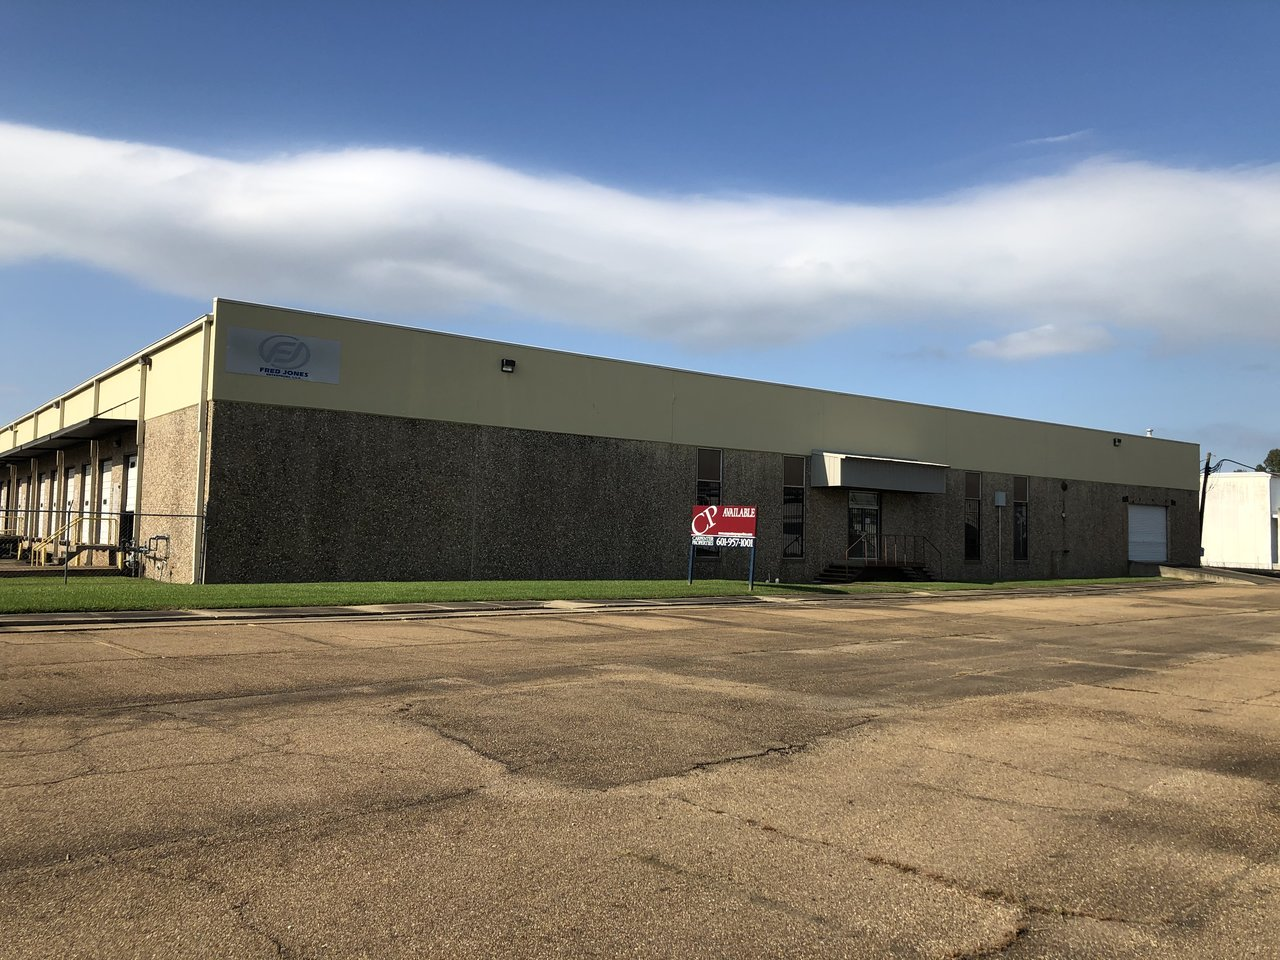 545 Ford Ave, Jackson, MS, 39209